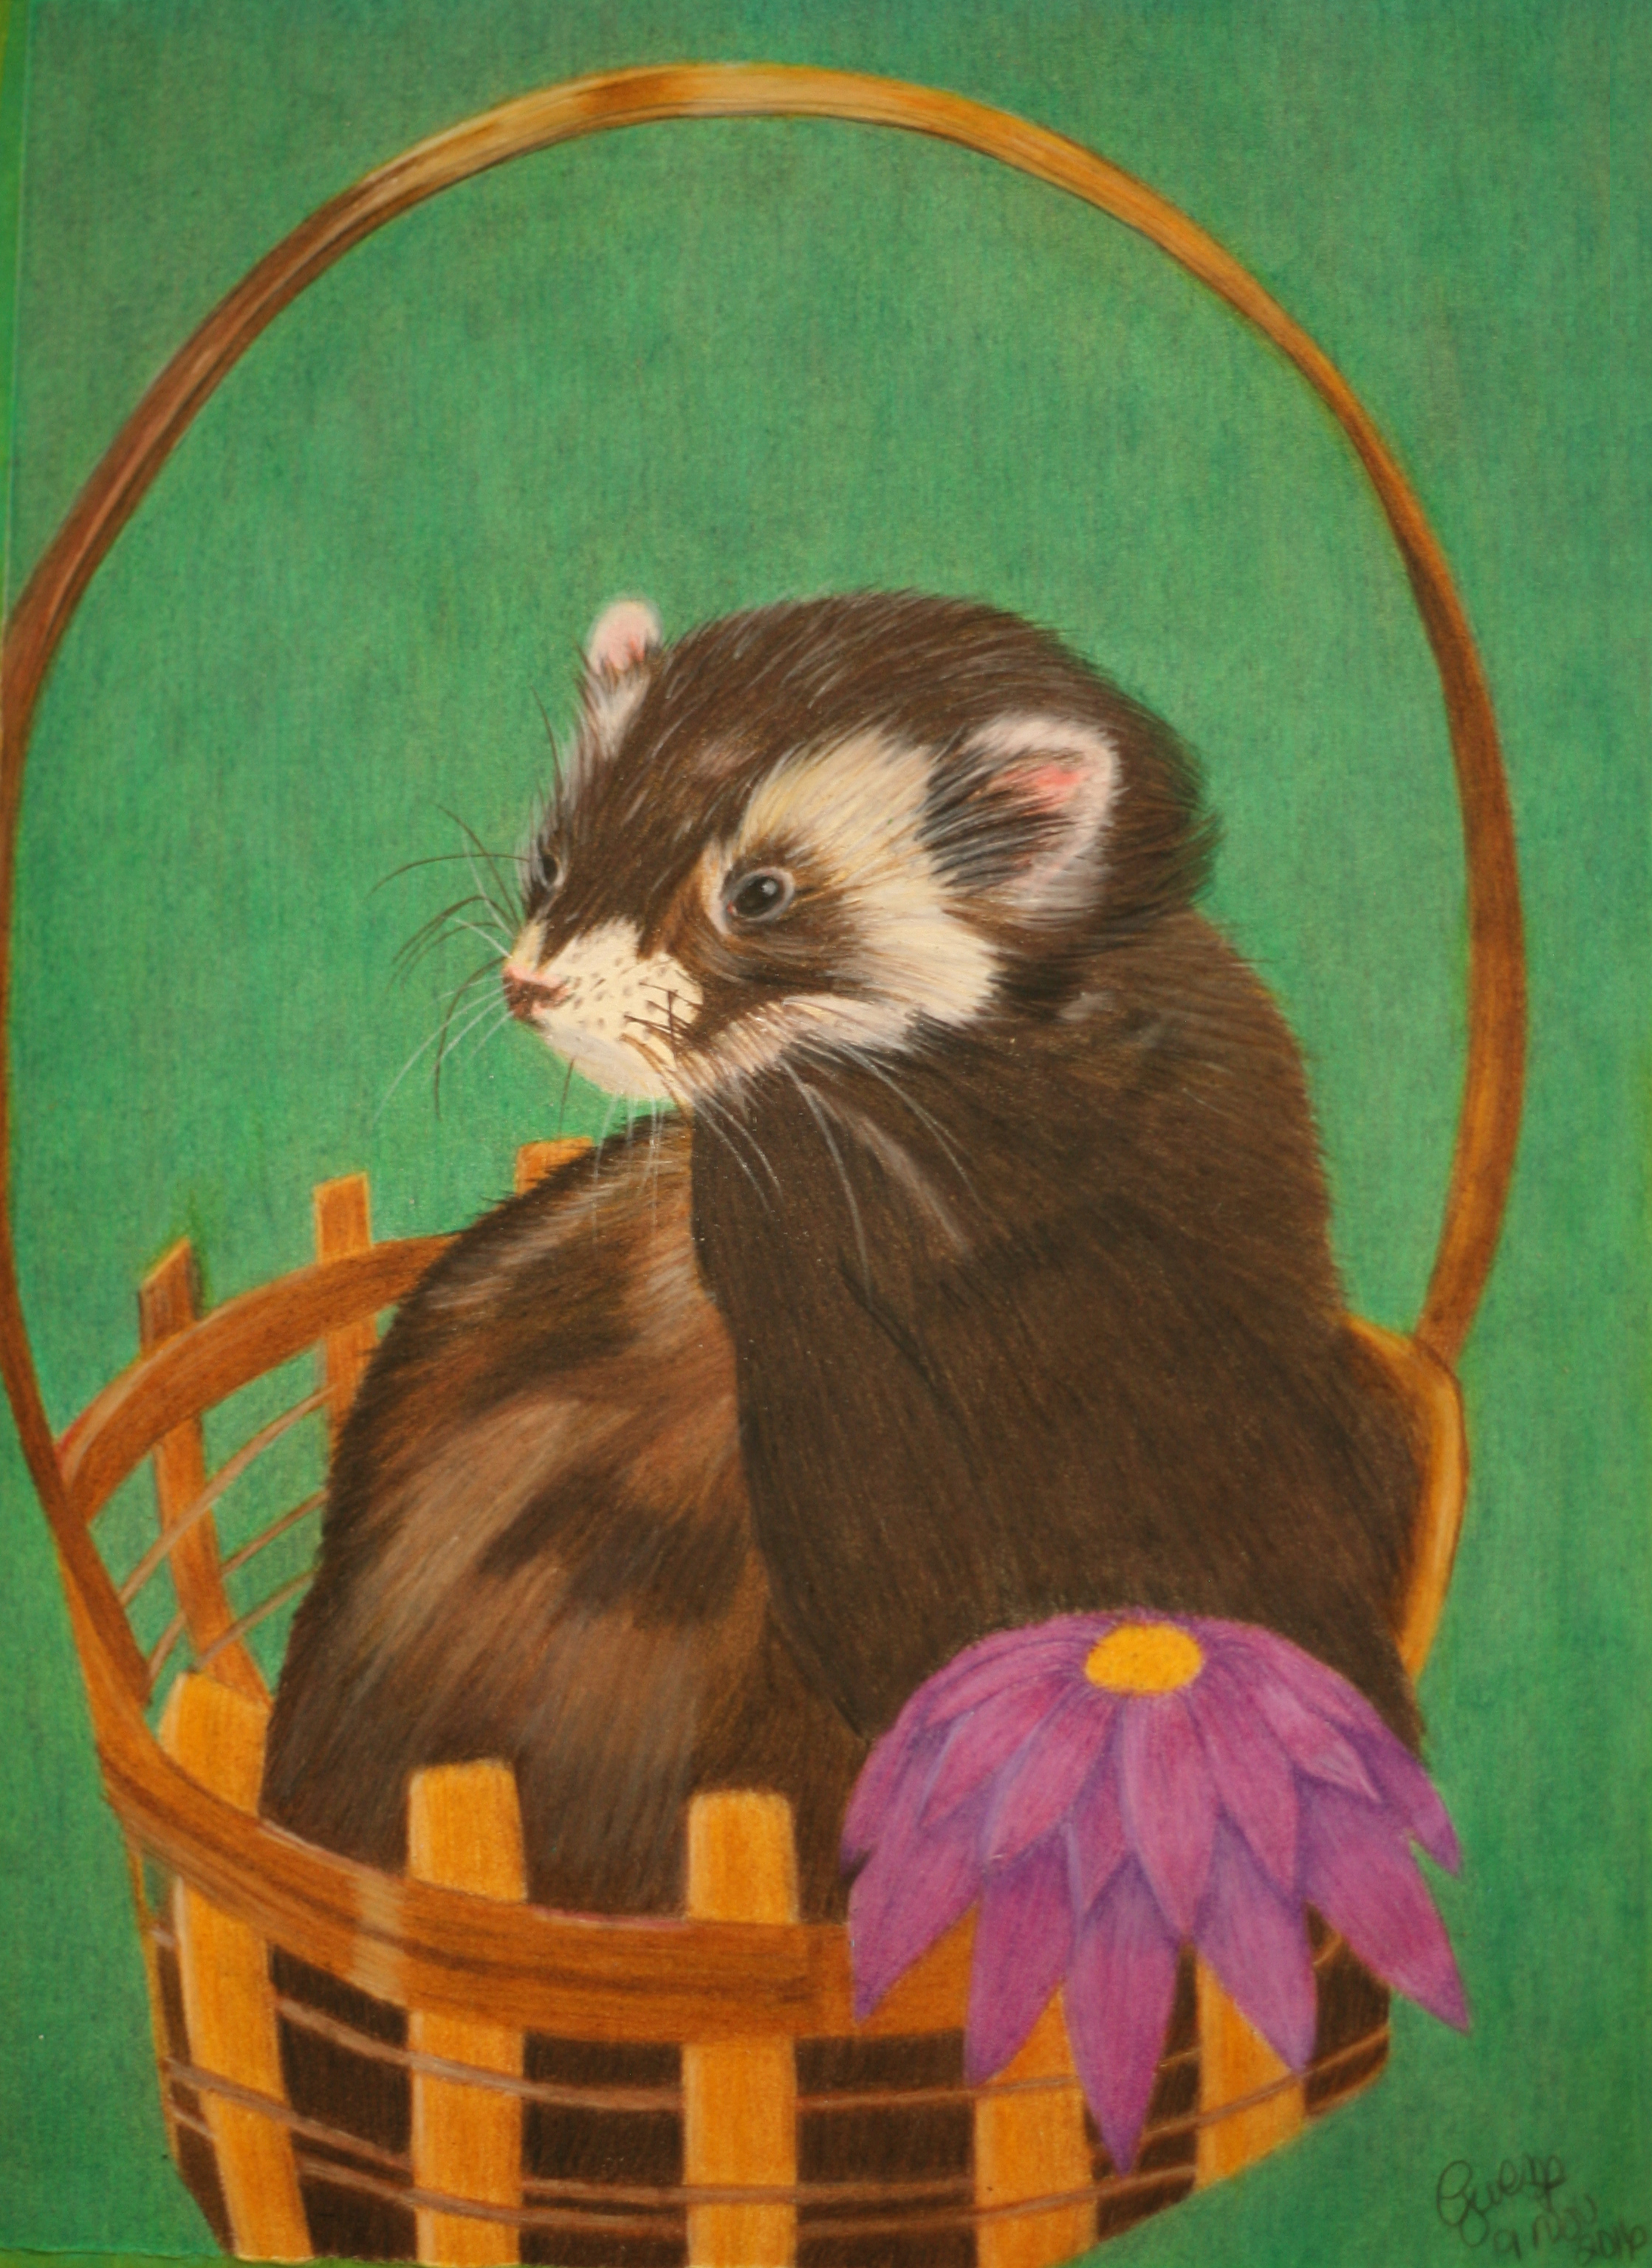 Rexxar, sable ferret in a light colored basket, photograph